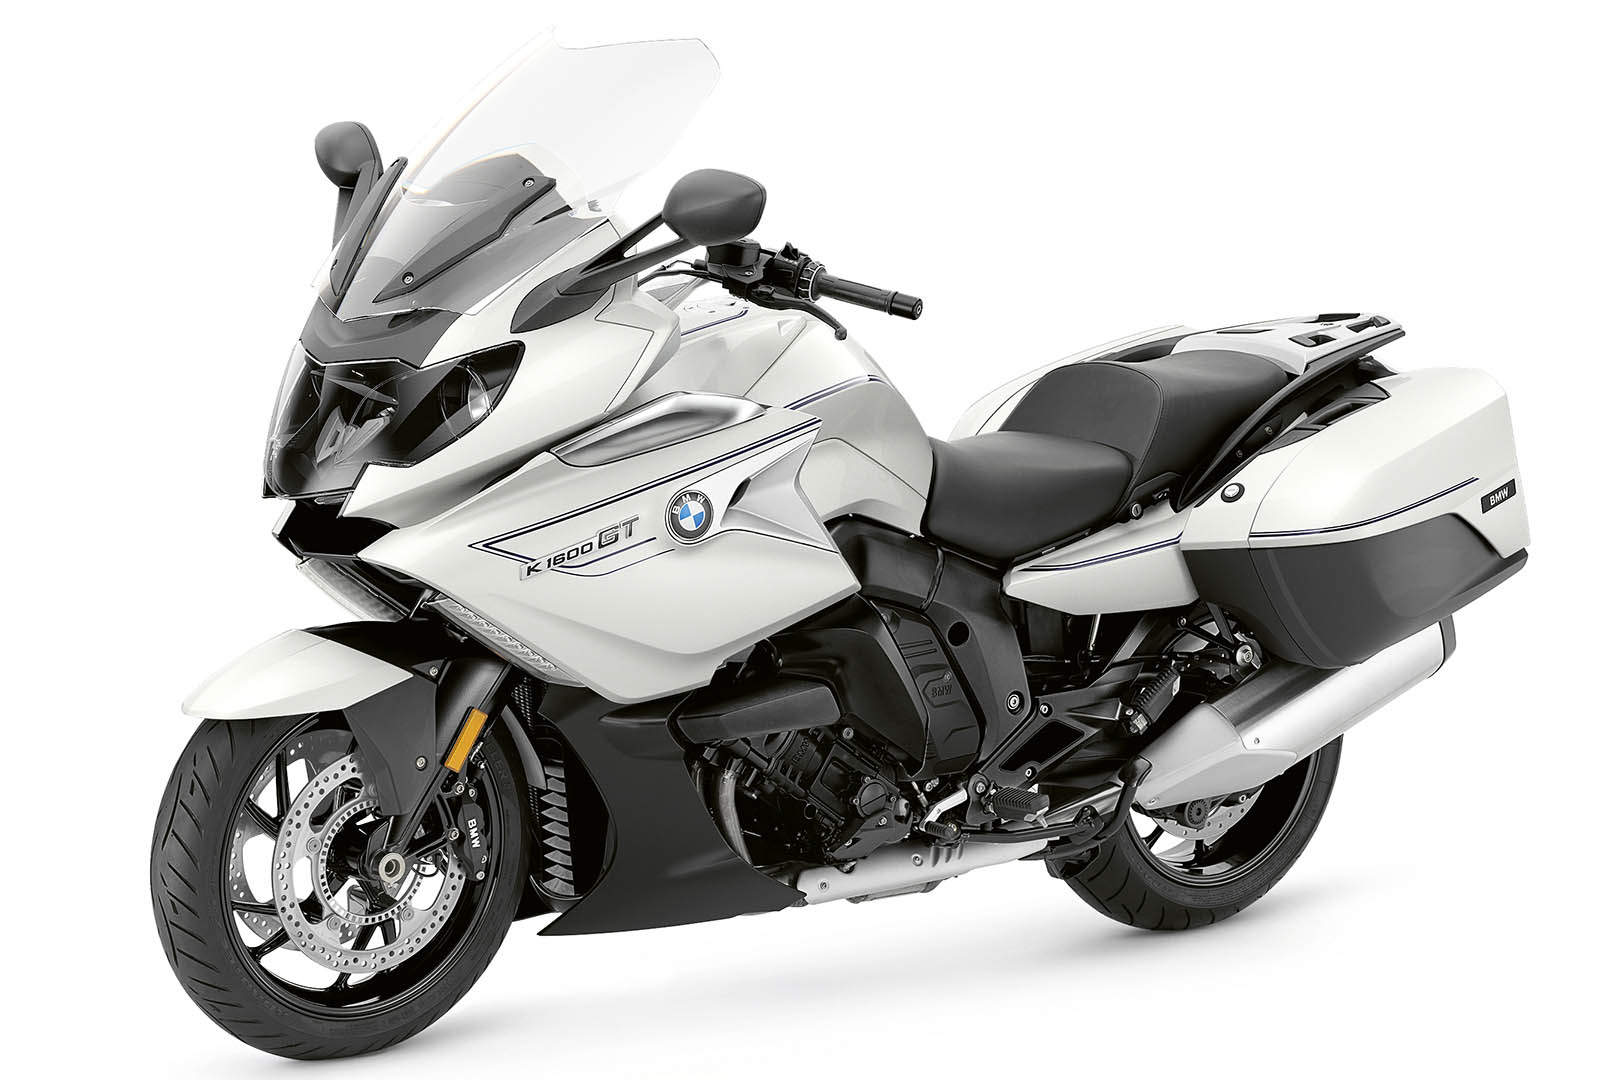 2021 BMW K 1600 GT First Look - For Sale